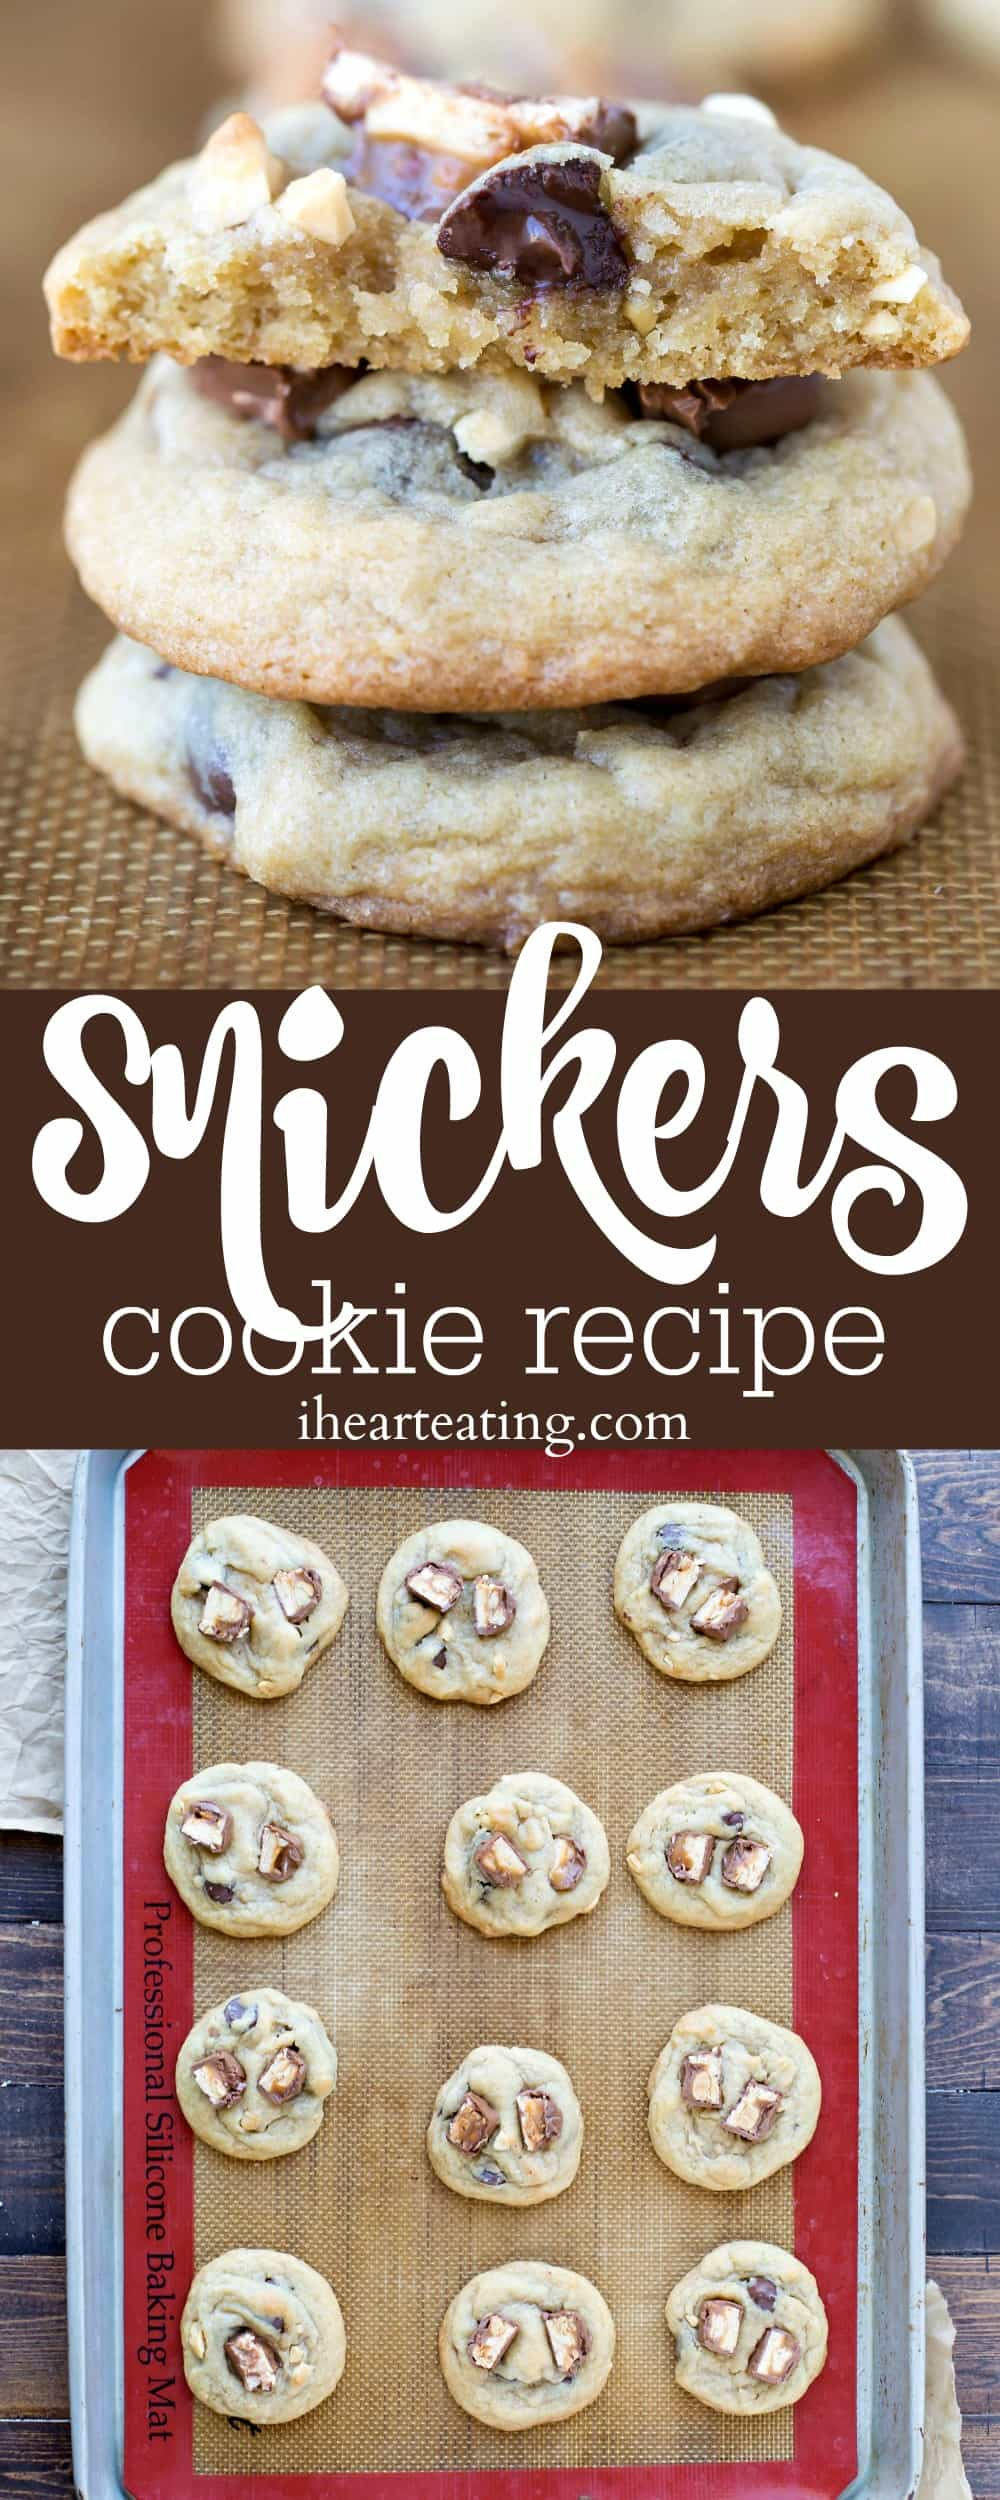 Snickers Cookie Recipe